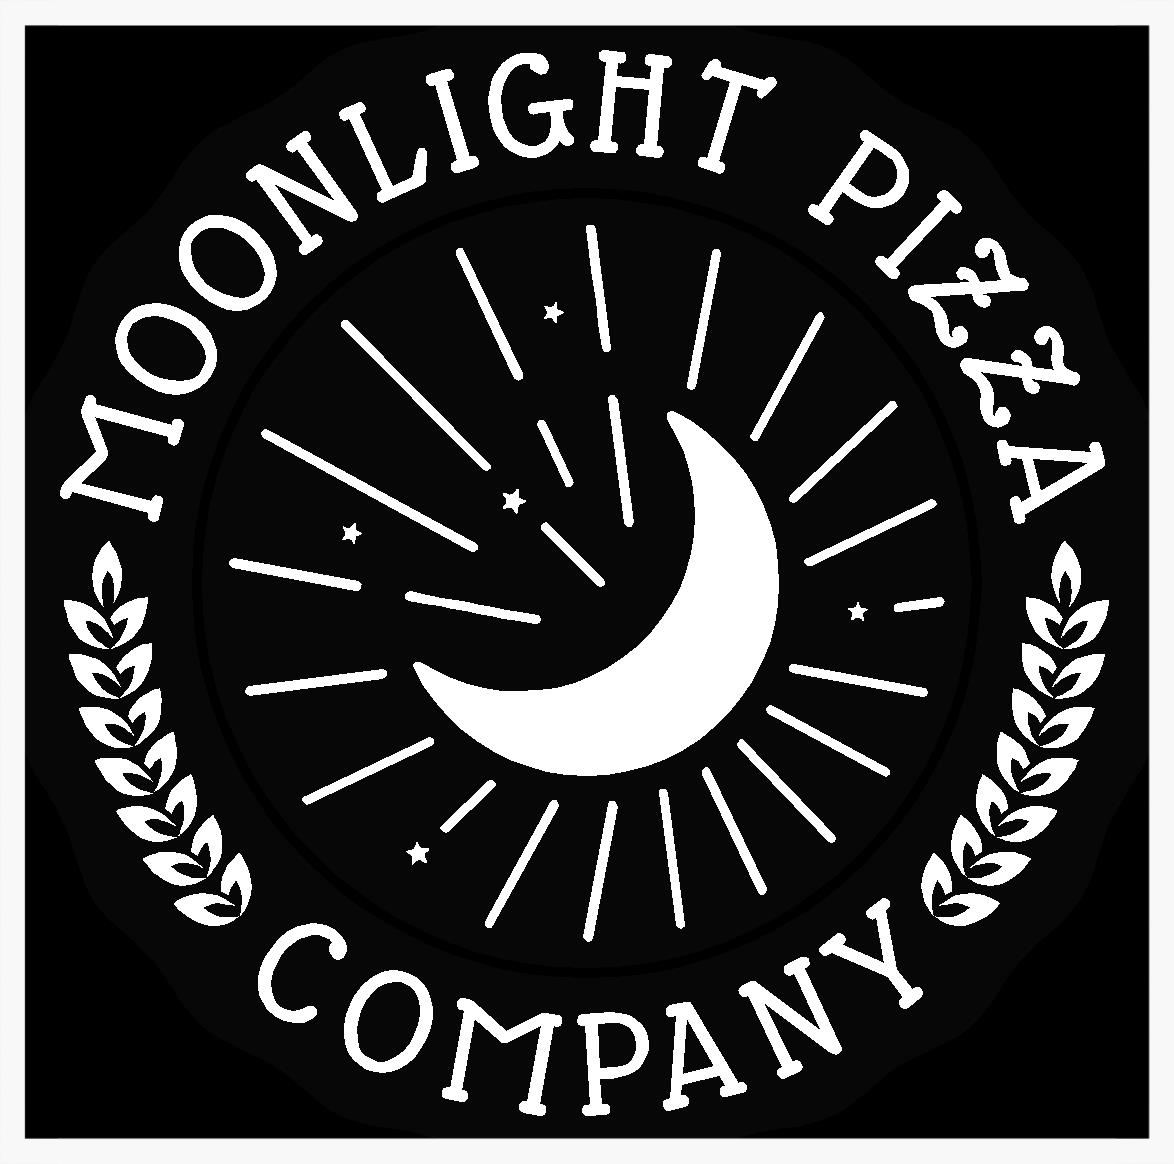 MOONLIGHT PIZZA COMPANY